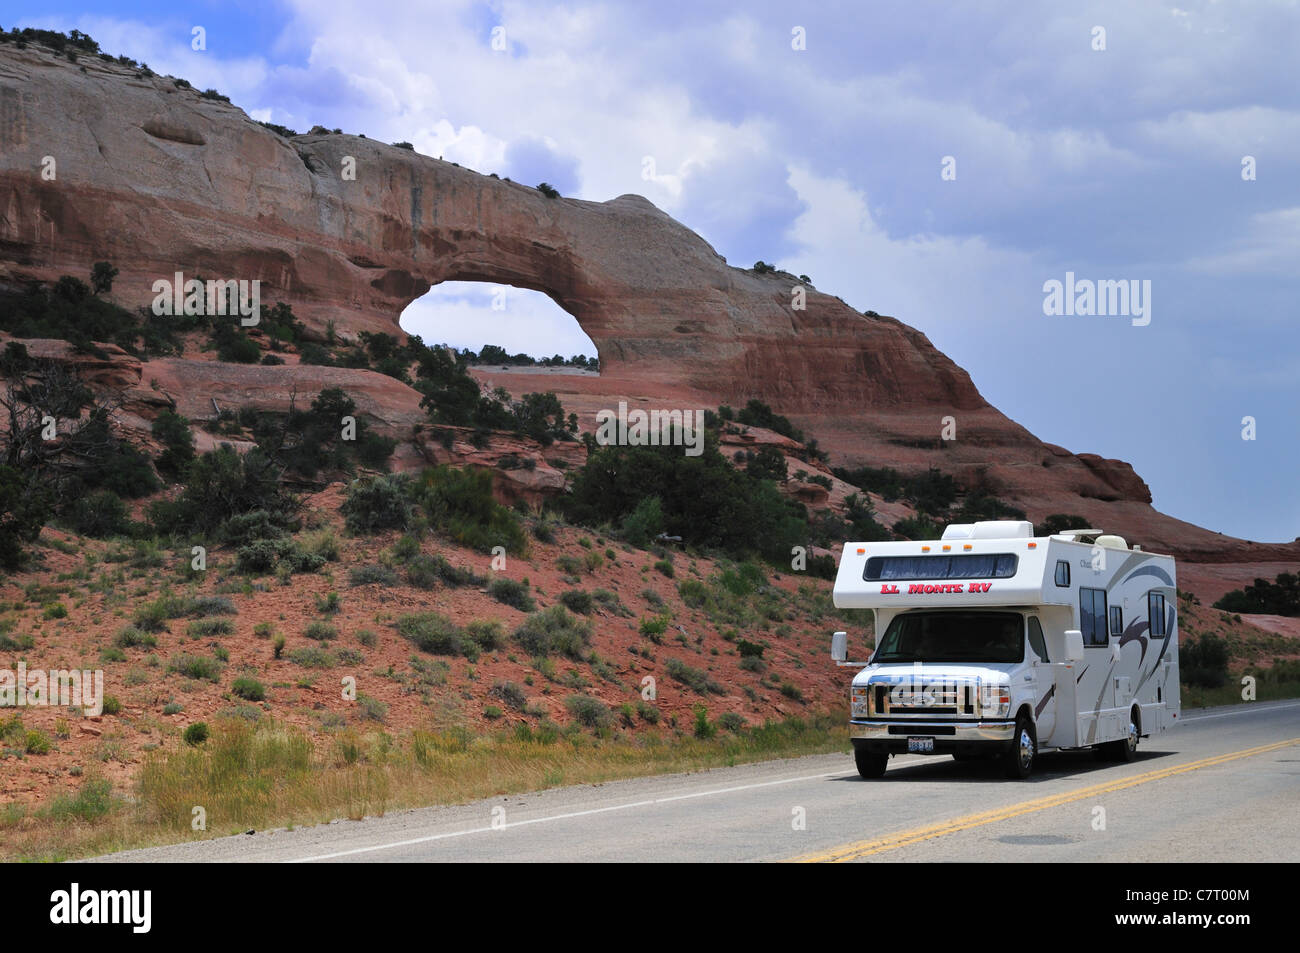 A motorhome camper glides by the Wilson arch, Monticello, Utah - Stock Image